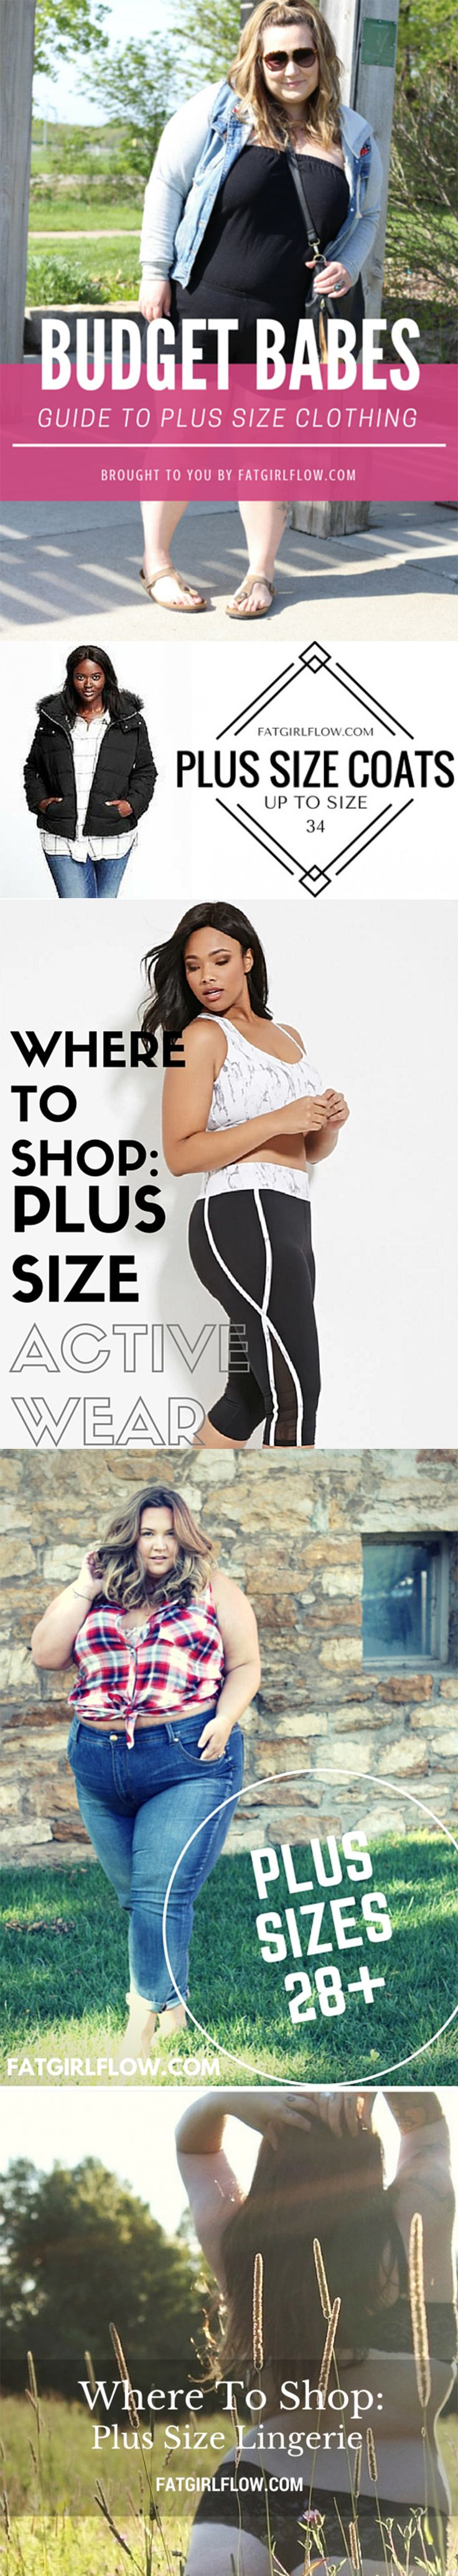 The Best Plus Size Shopping Guides! Links to hundreds of trendy plus size items and stores! Only at Fatgirlflow.com